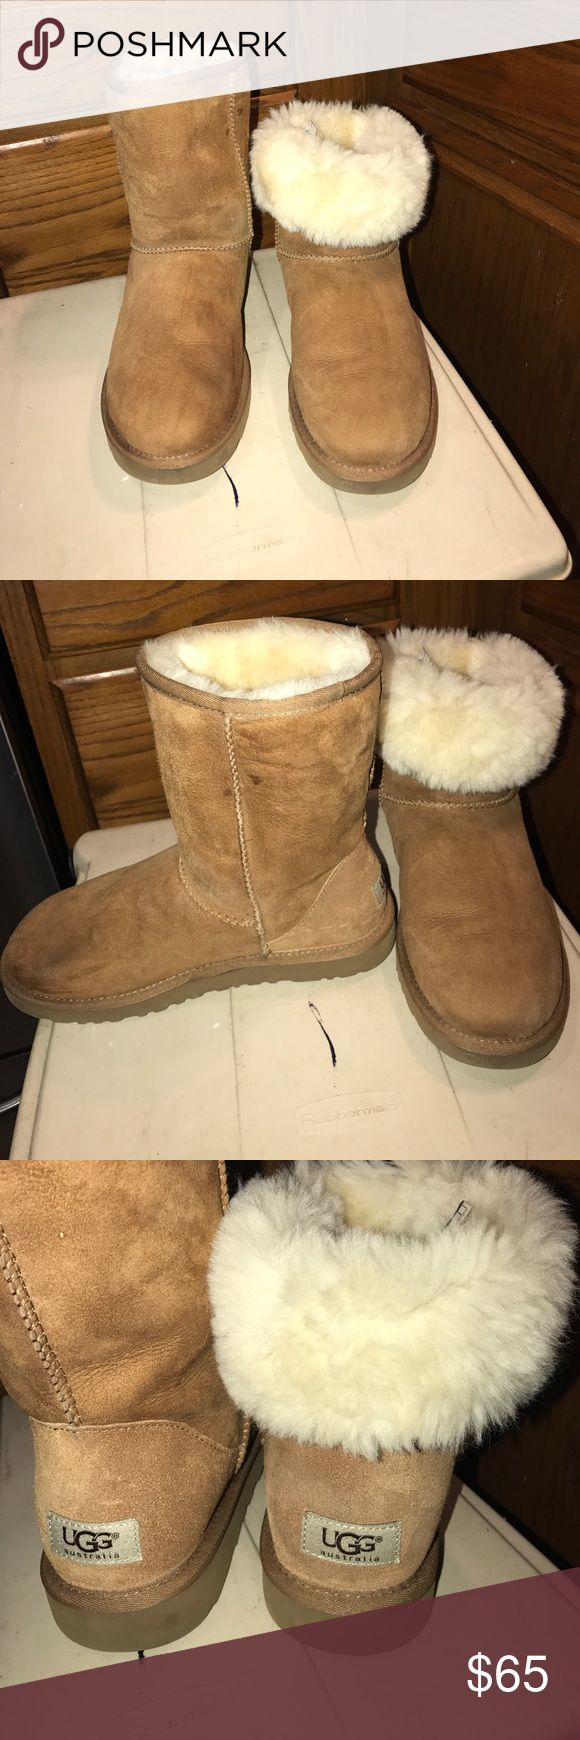 woman Classic  UGg color beige Woman classic  style UGG good  condition  color  beige Australia ugg 9 inches tall clean  fur own inside style no 5825 USA Size8 U k 6.5 EU 39  Japan 250  sole are good must have UGG Shoes Ankle Boots & Booties